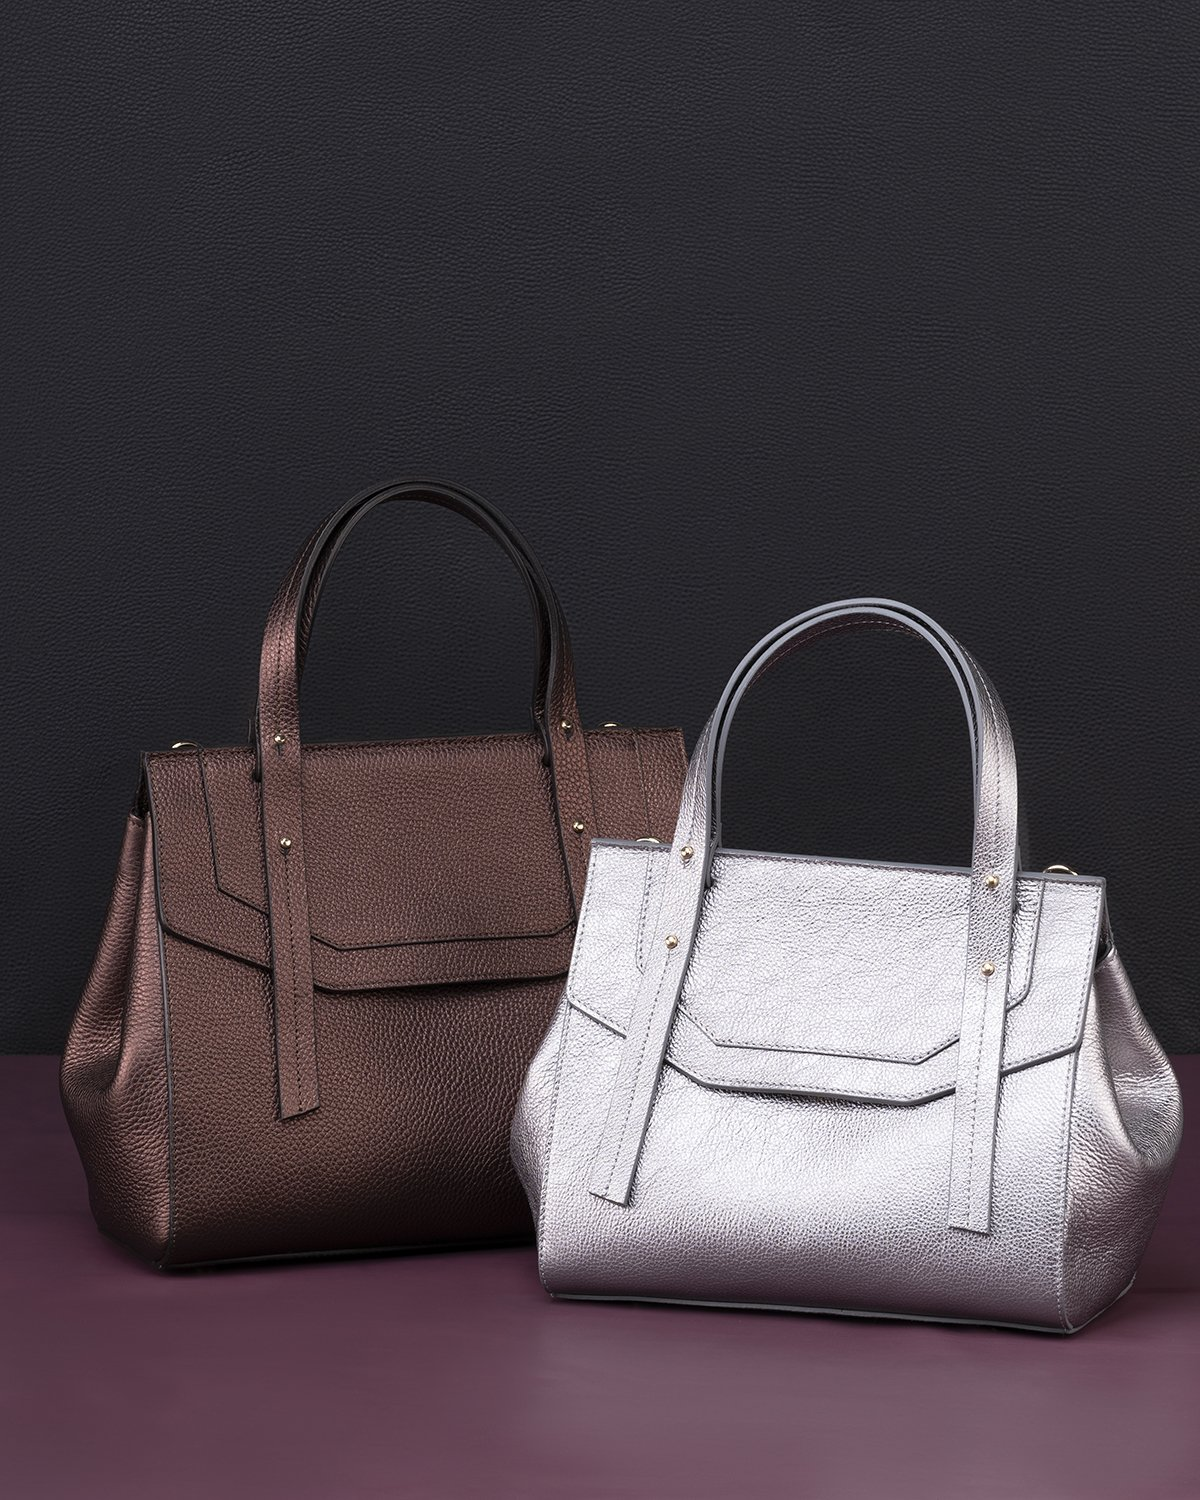 Kilesa italian bags made with shiny calfskin leather